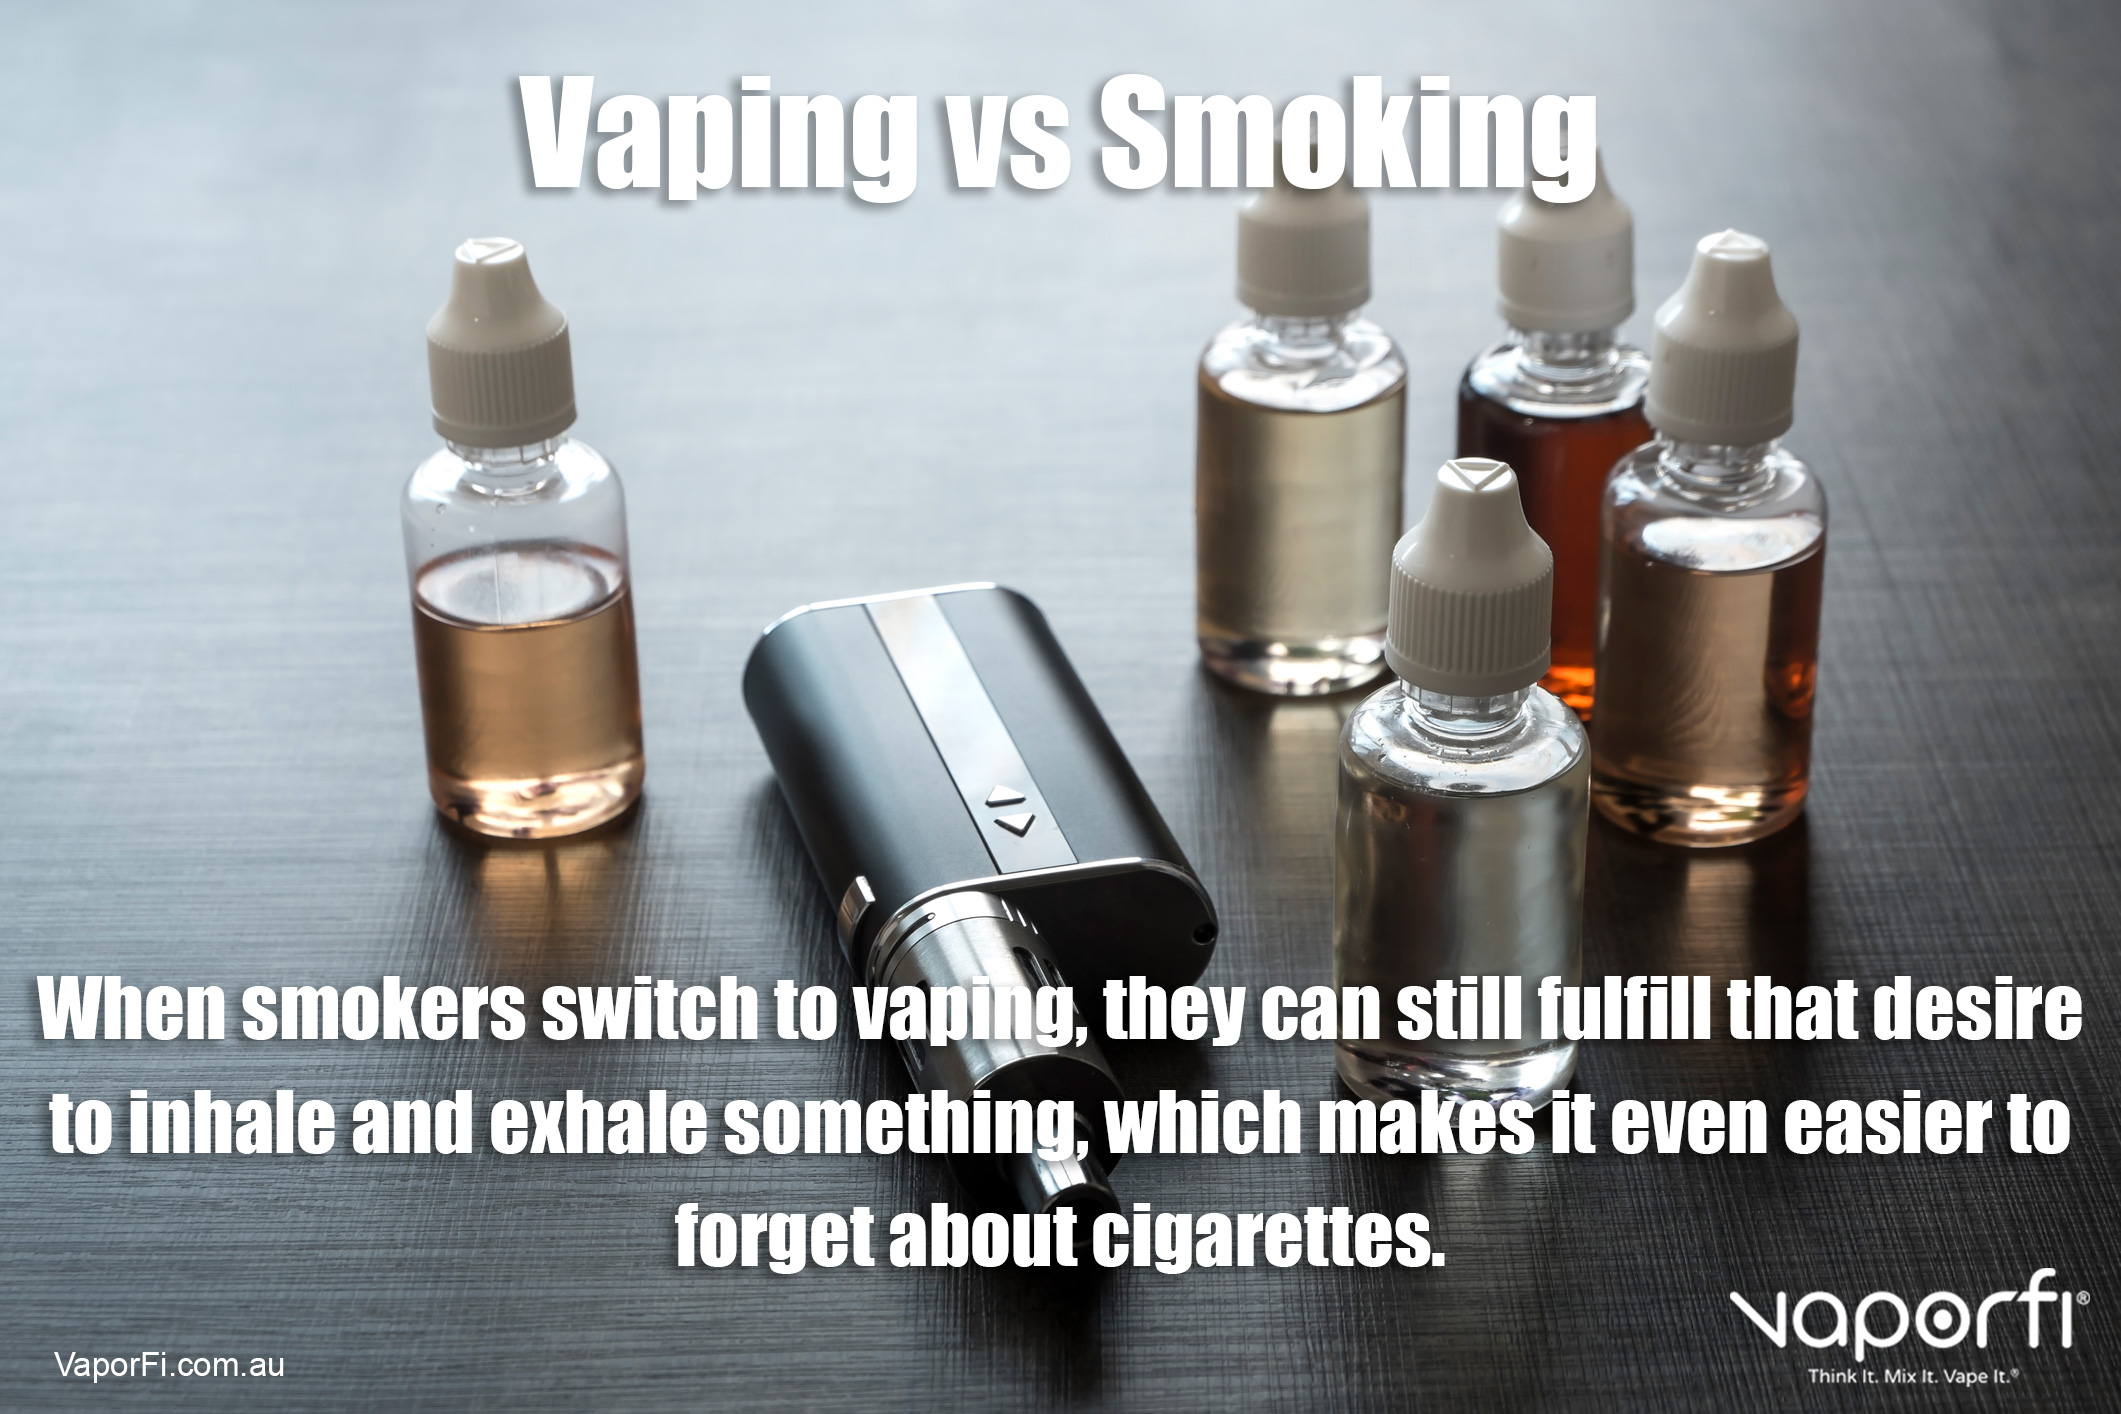 VaporFi Australia - Benefits of Vaping Versus Smoking: Redirect Habit